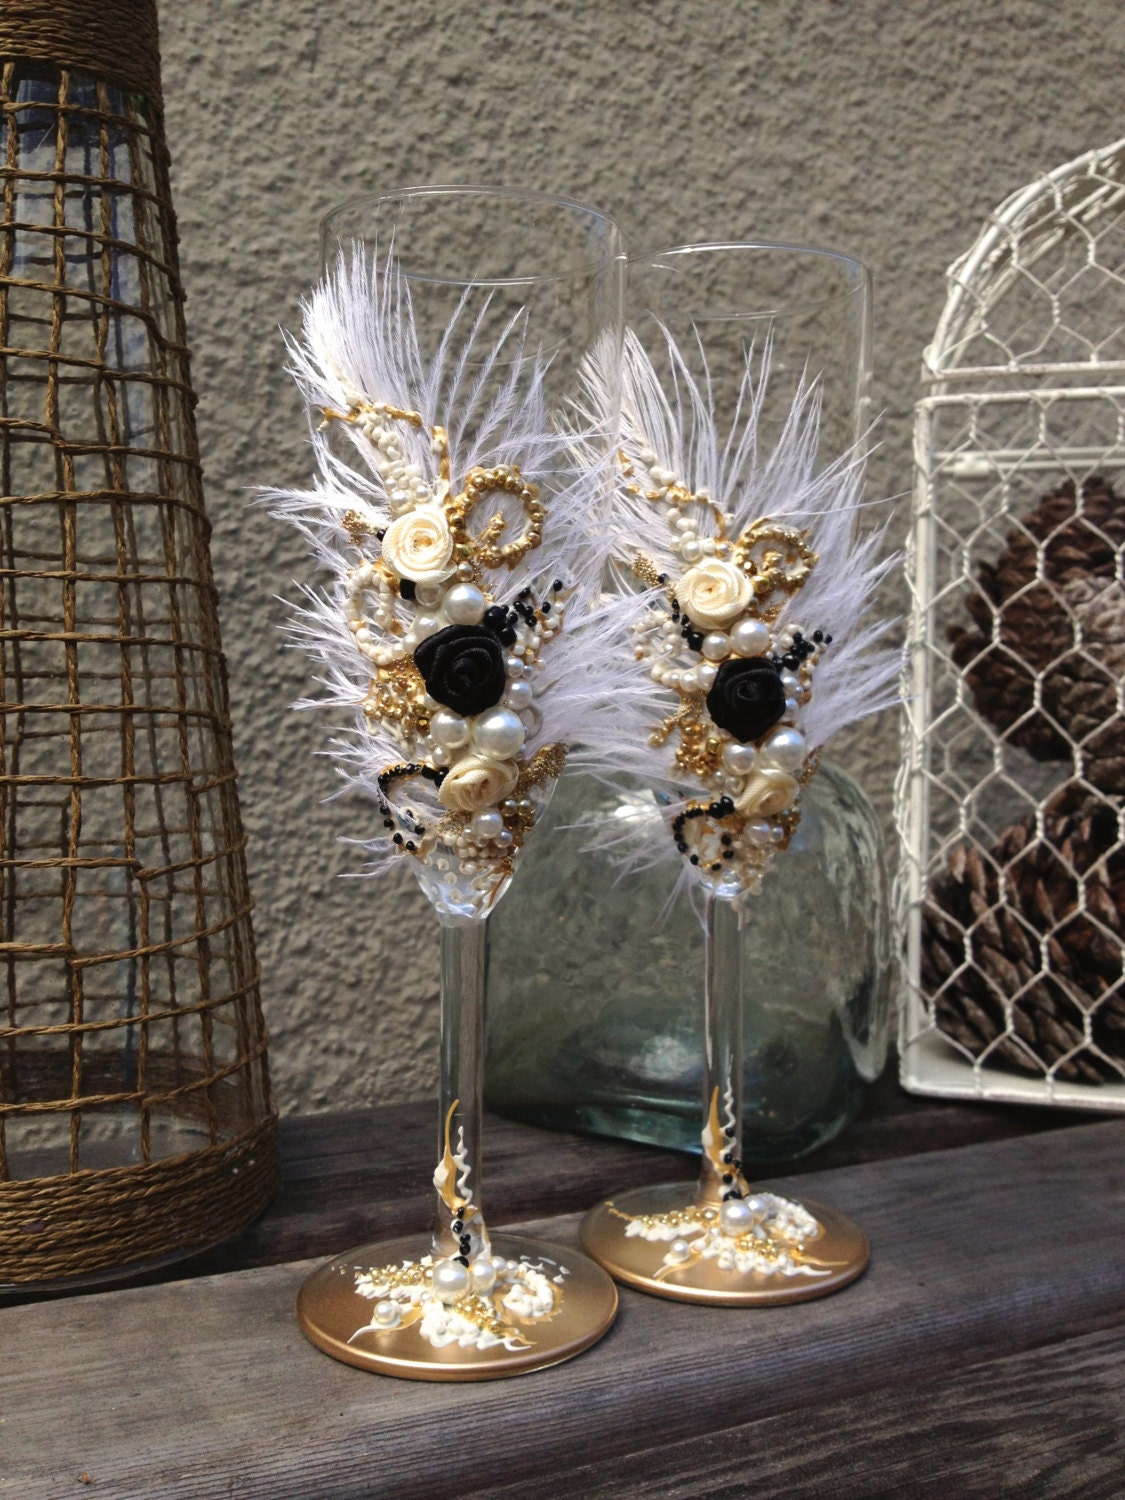 Kitchen Tea Ideas Themes Great Gatsby Wedding Champagne Glasses With Ostrich Feathers